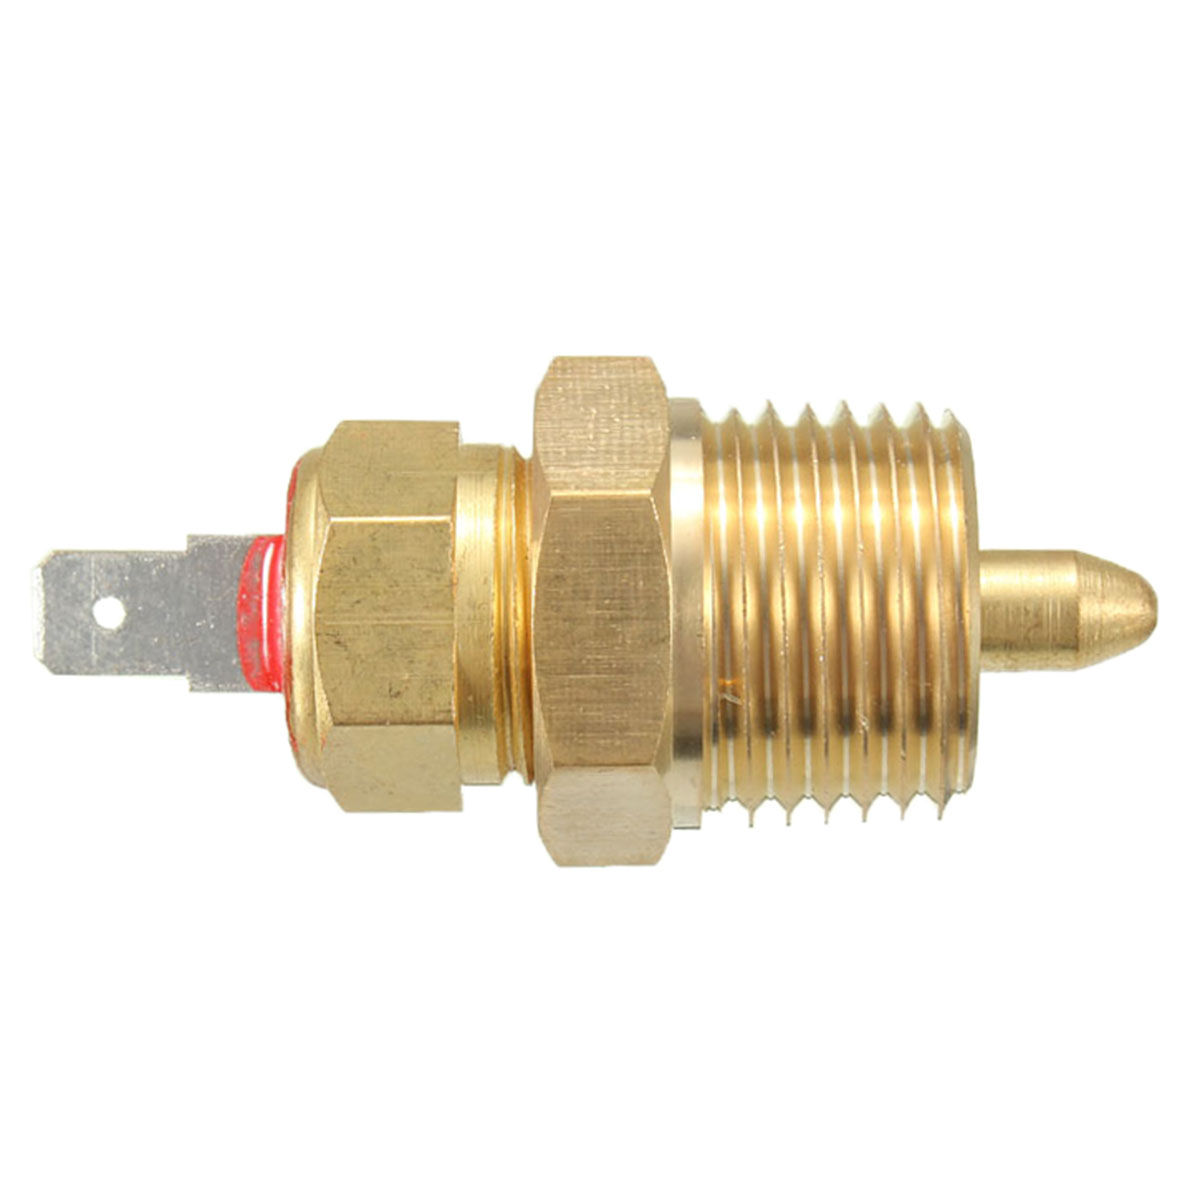 Engine Fan Switch : Degree engine cooling fan thermostat temp switch